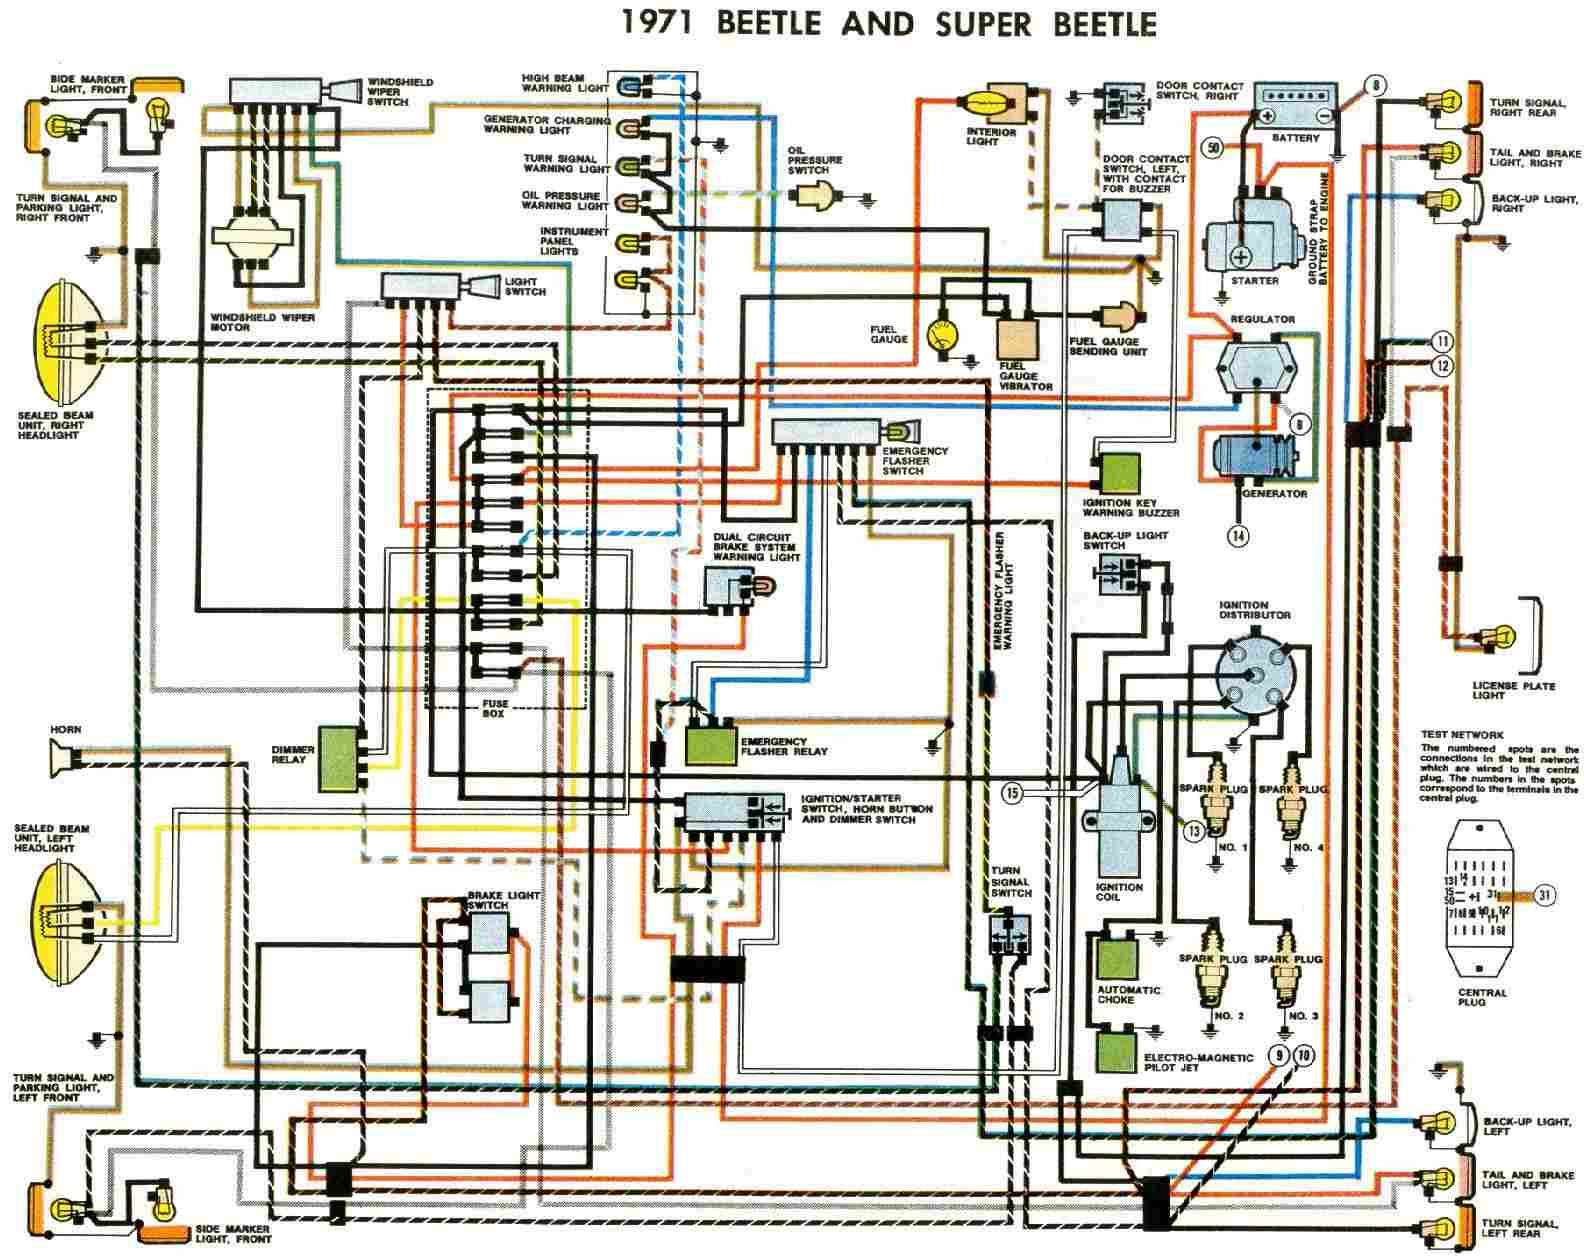 vw wiring diagrams free 2008 vw beetle wiring diagrams free download diagram free auto wiring diagram: 1971 vw beetle and super beetle